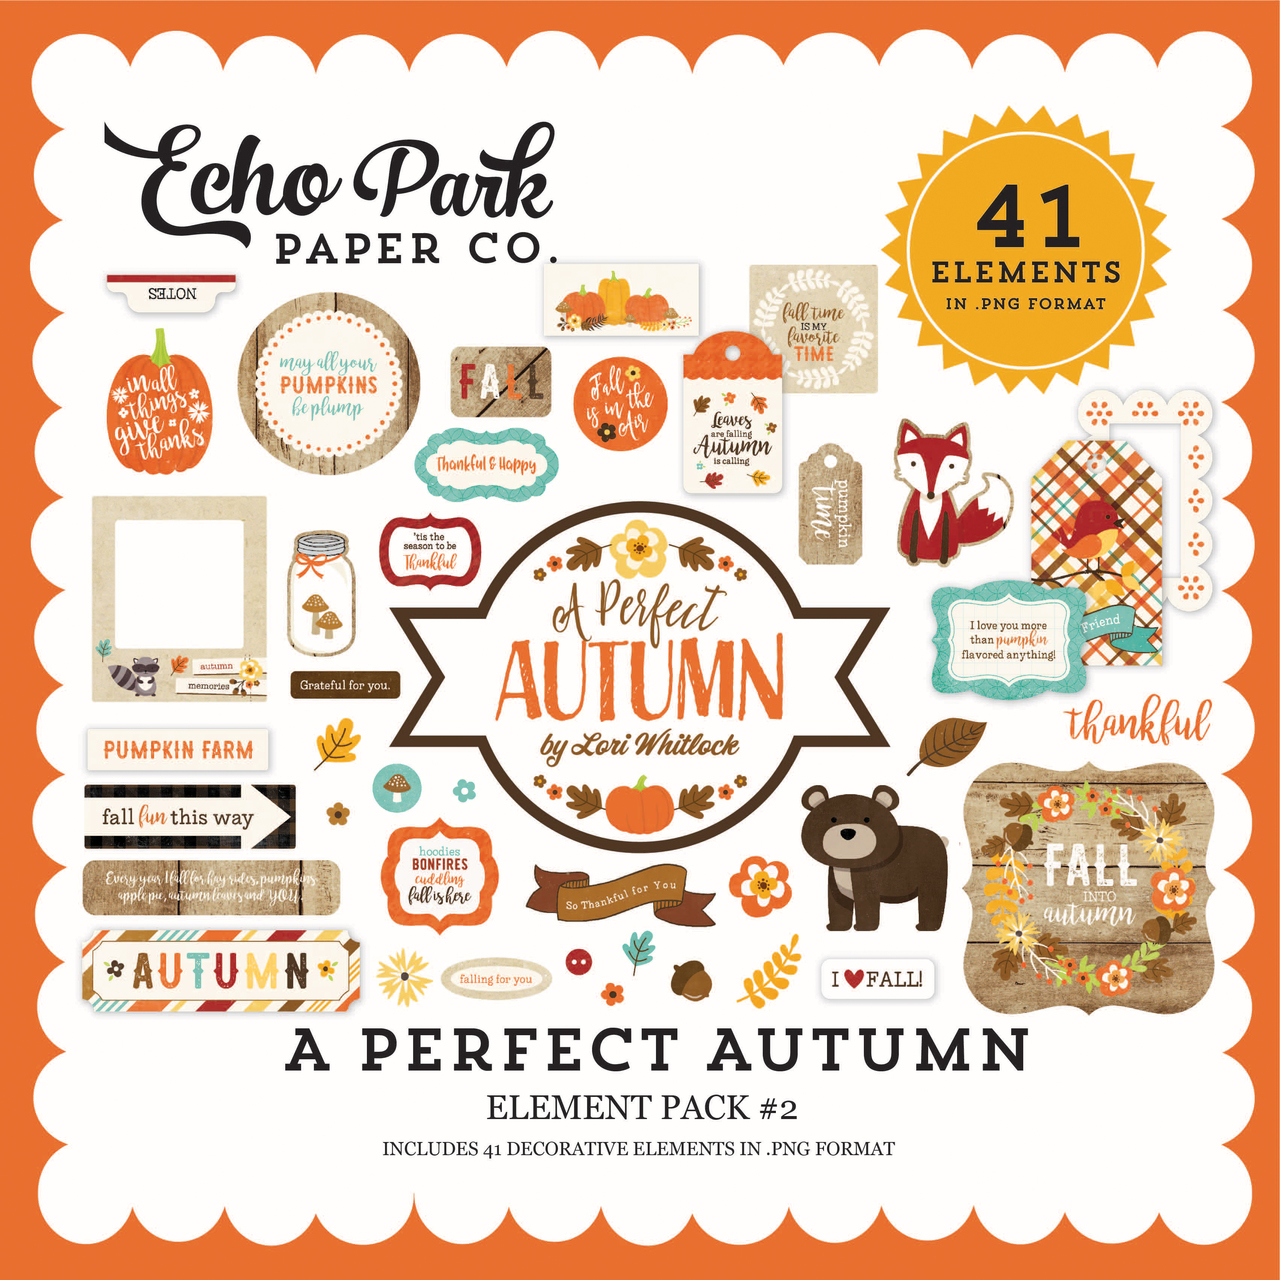 A Perfect Autumn Element Pack #2